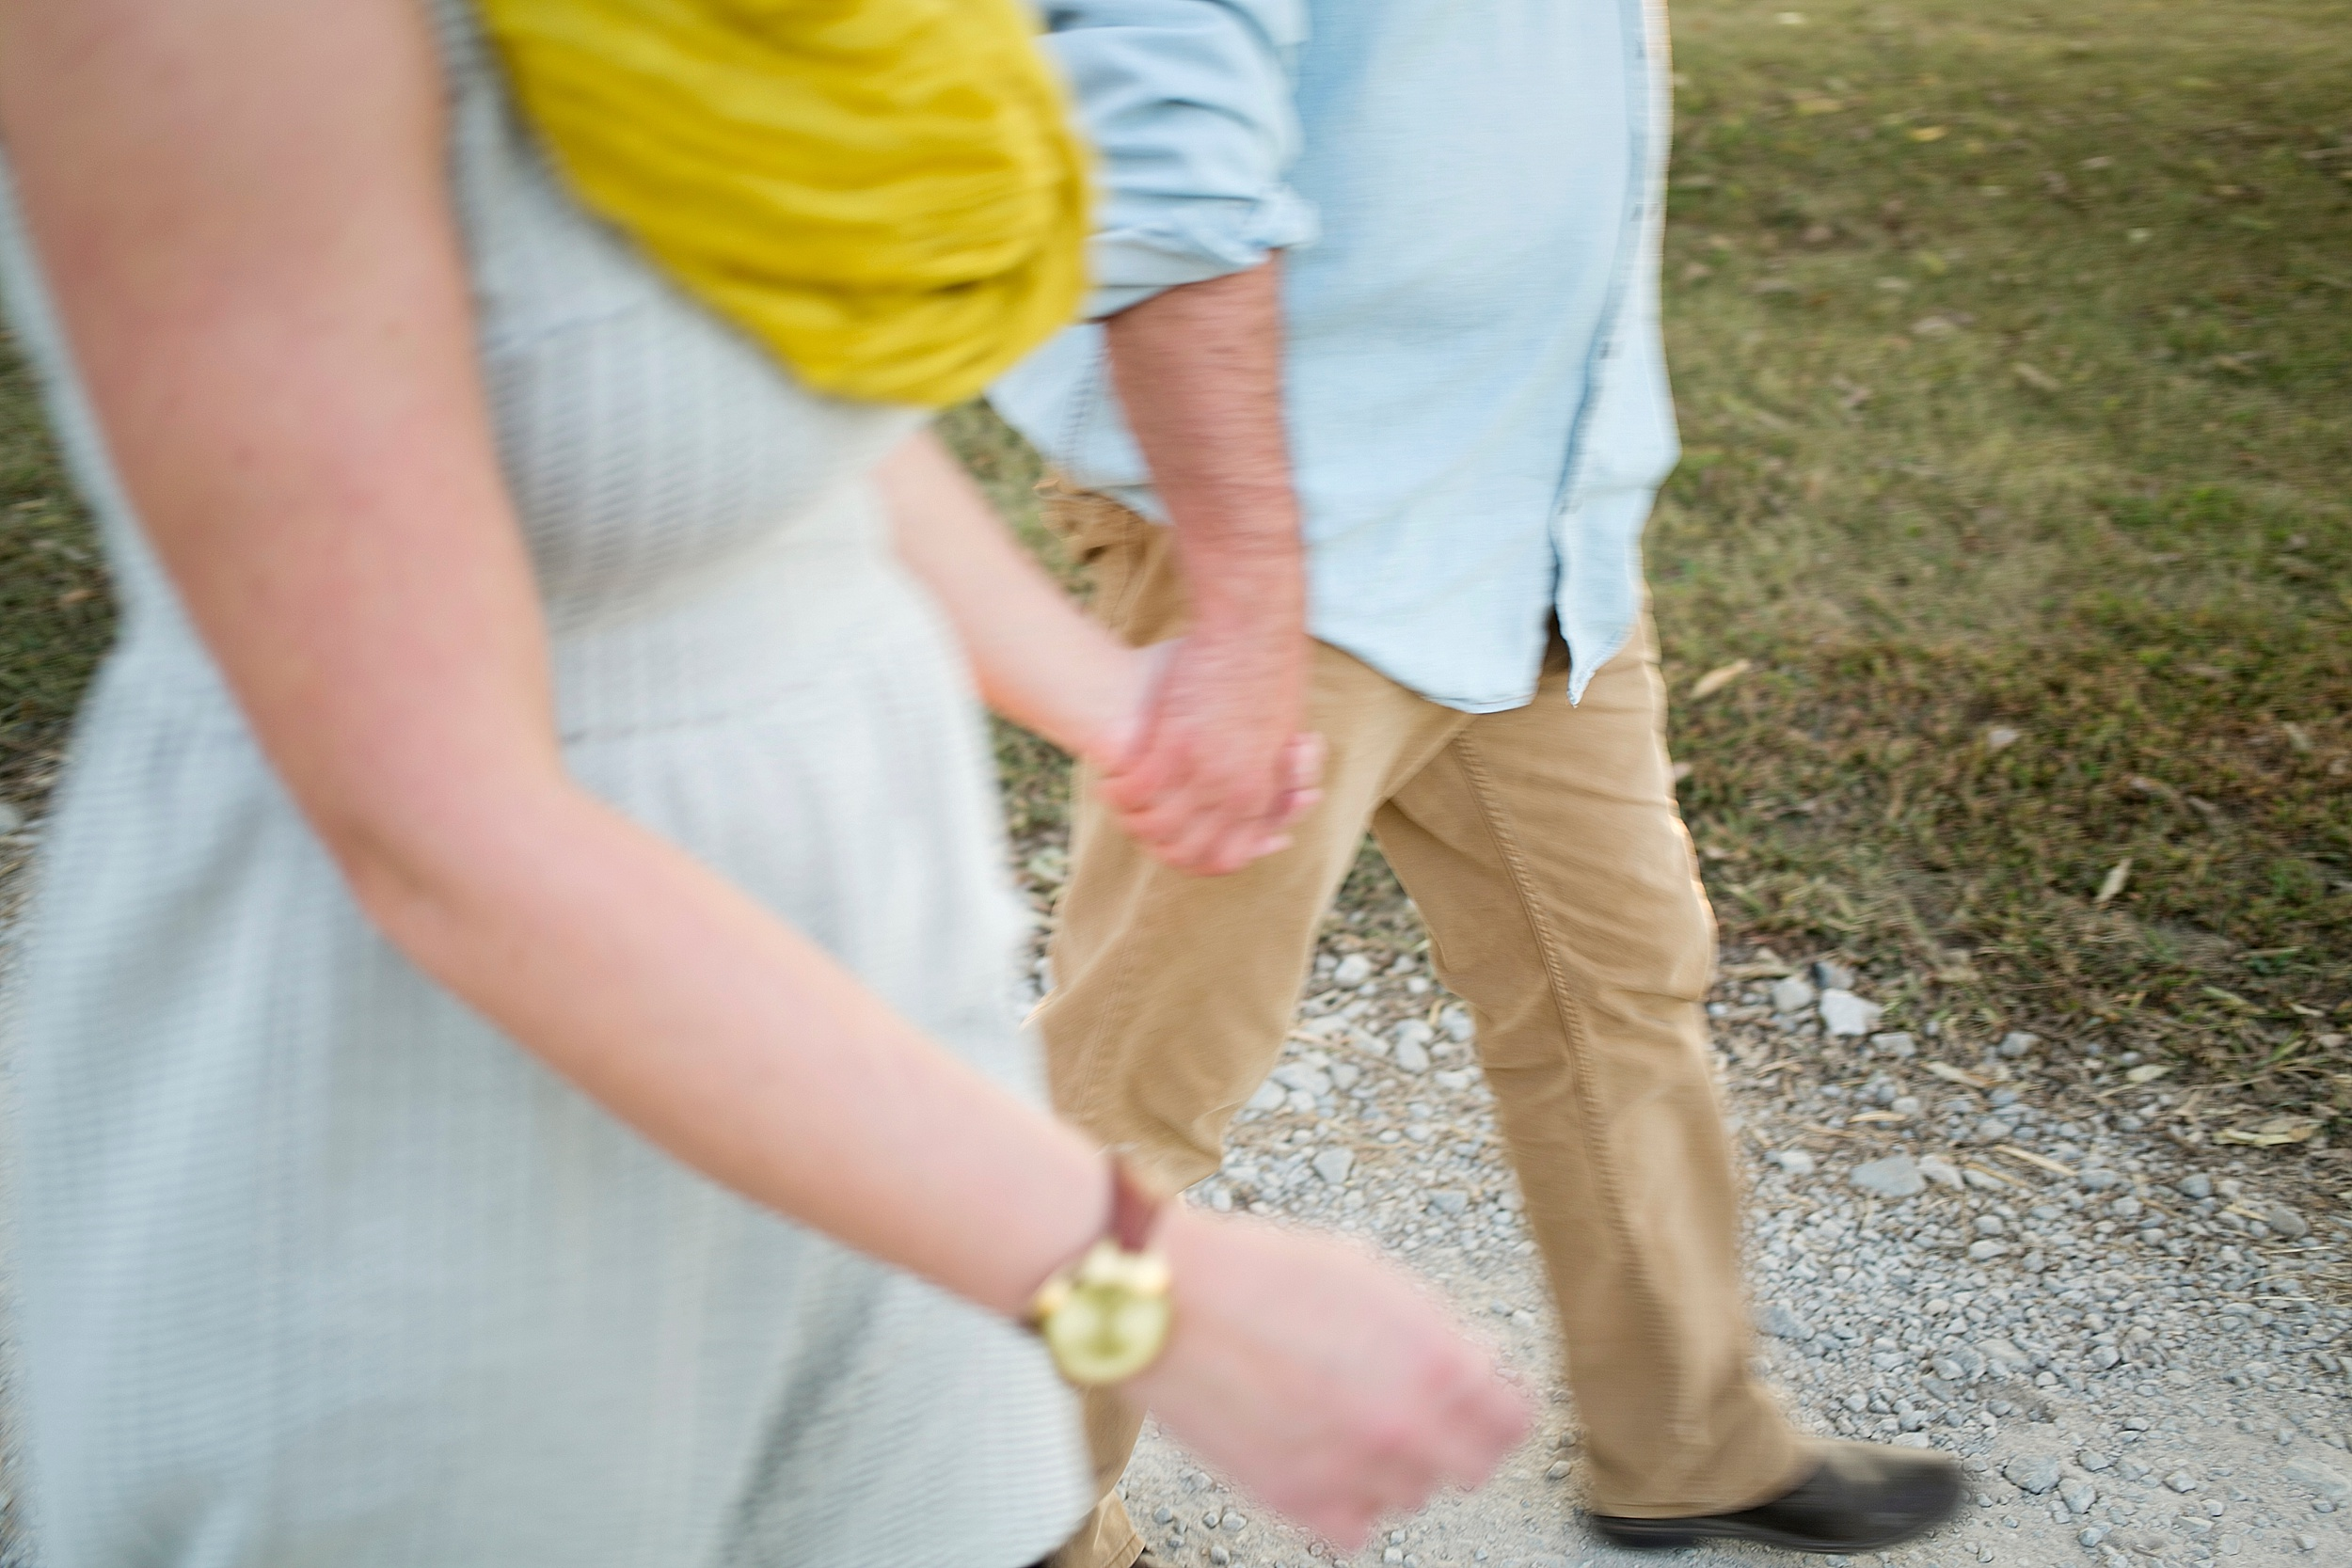 49-couple-holding-hands-family-pic.jpg